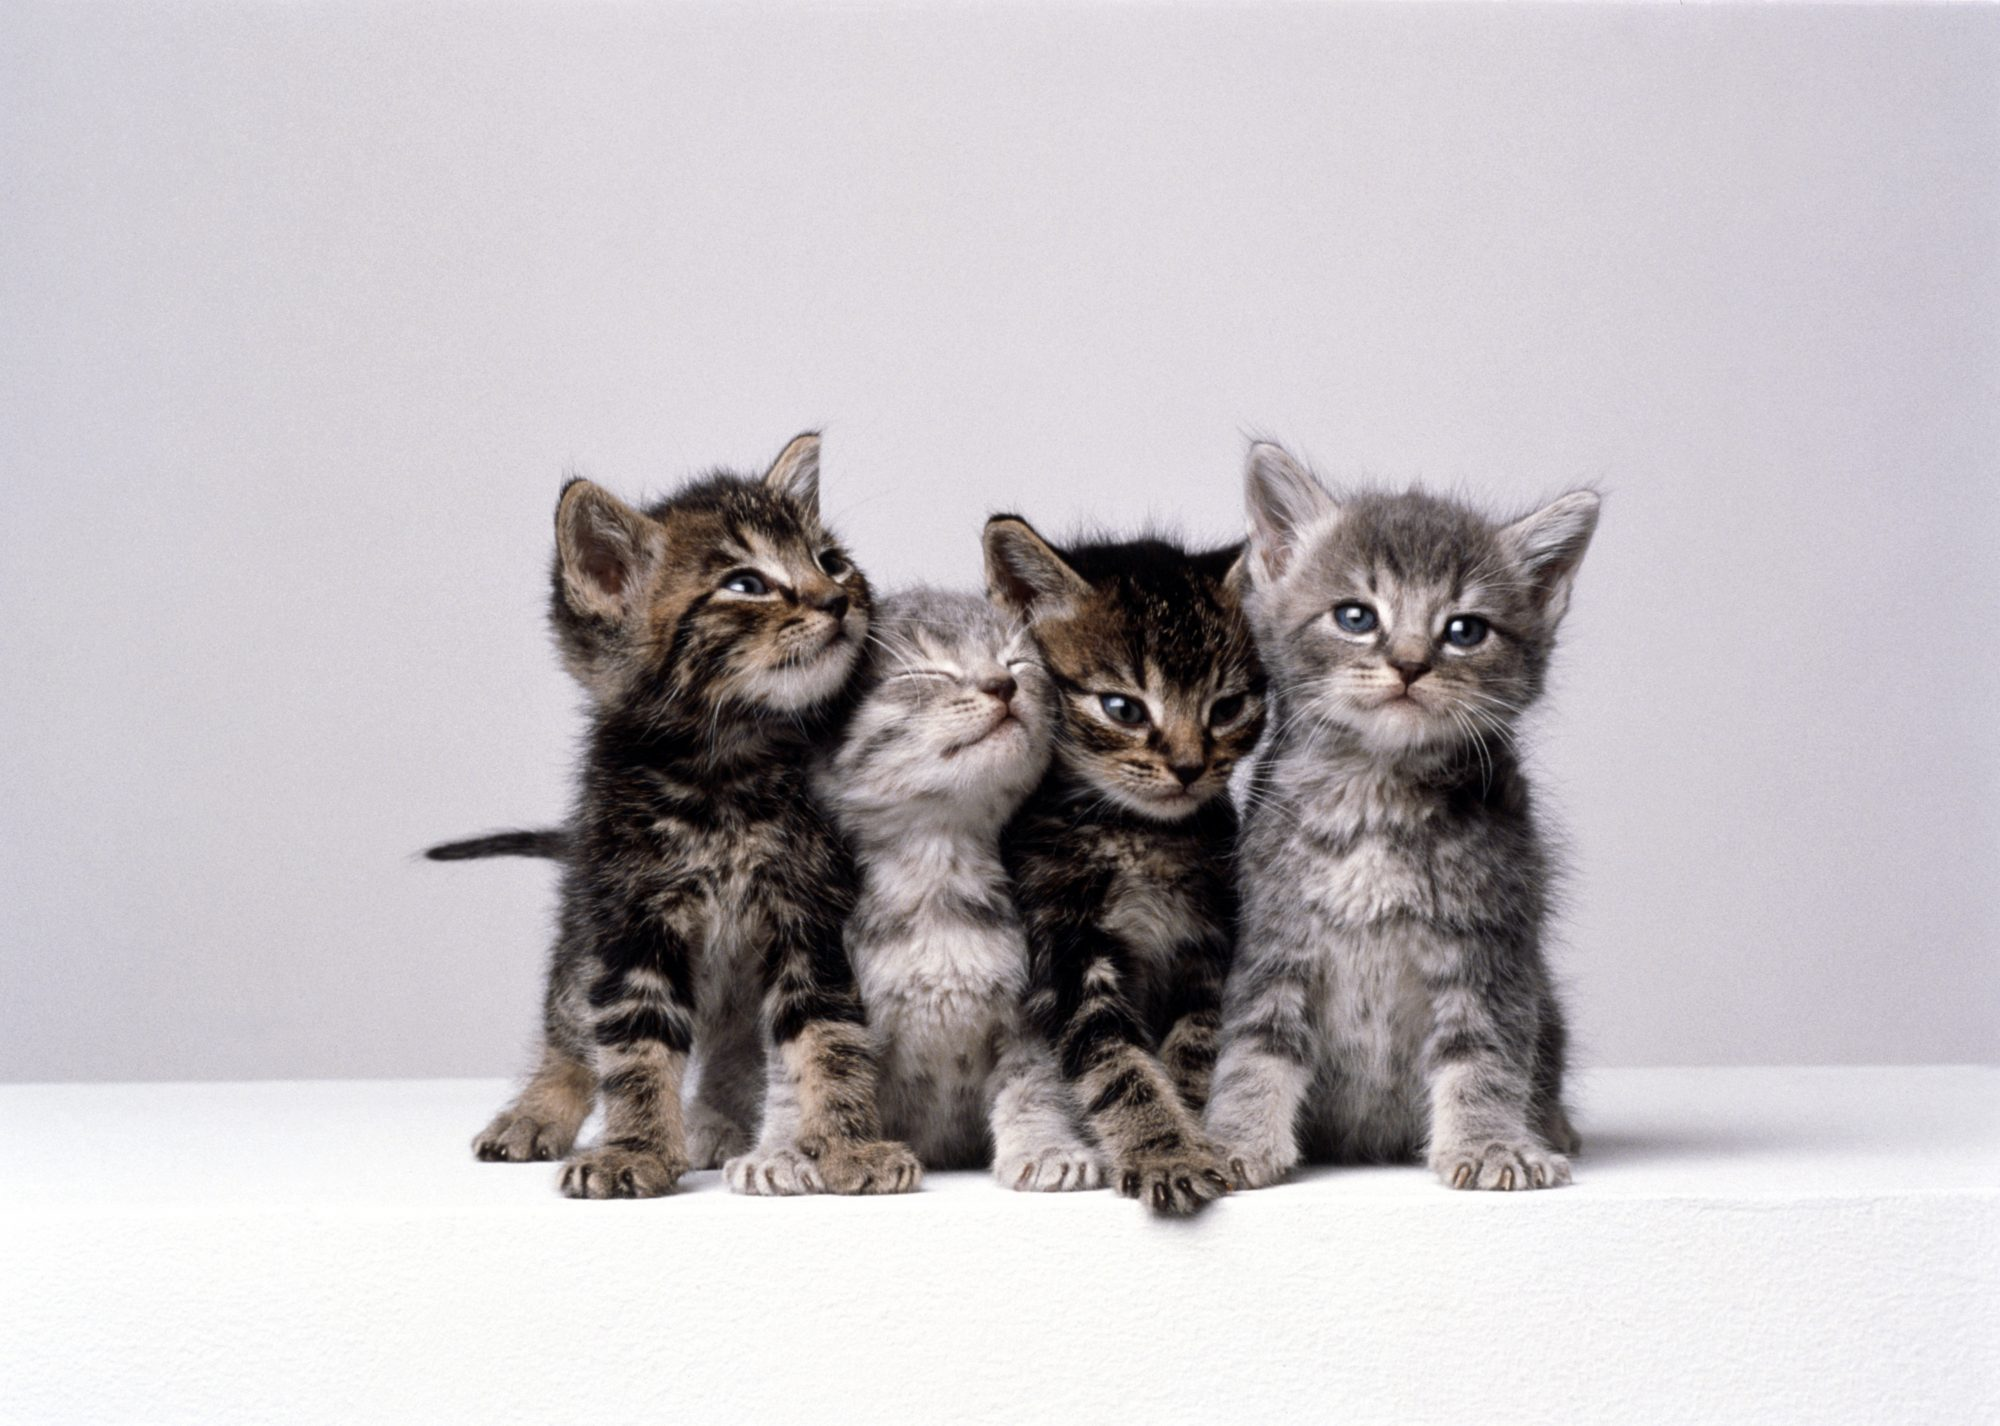 The Best Female Cat Names - You've Got To Be Kitten Me!